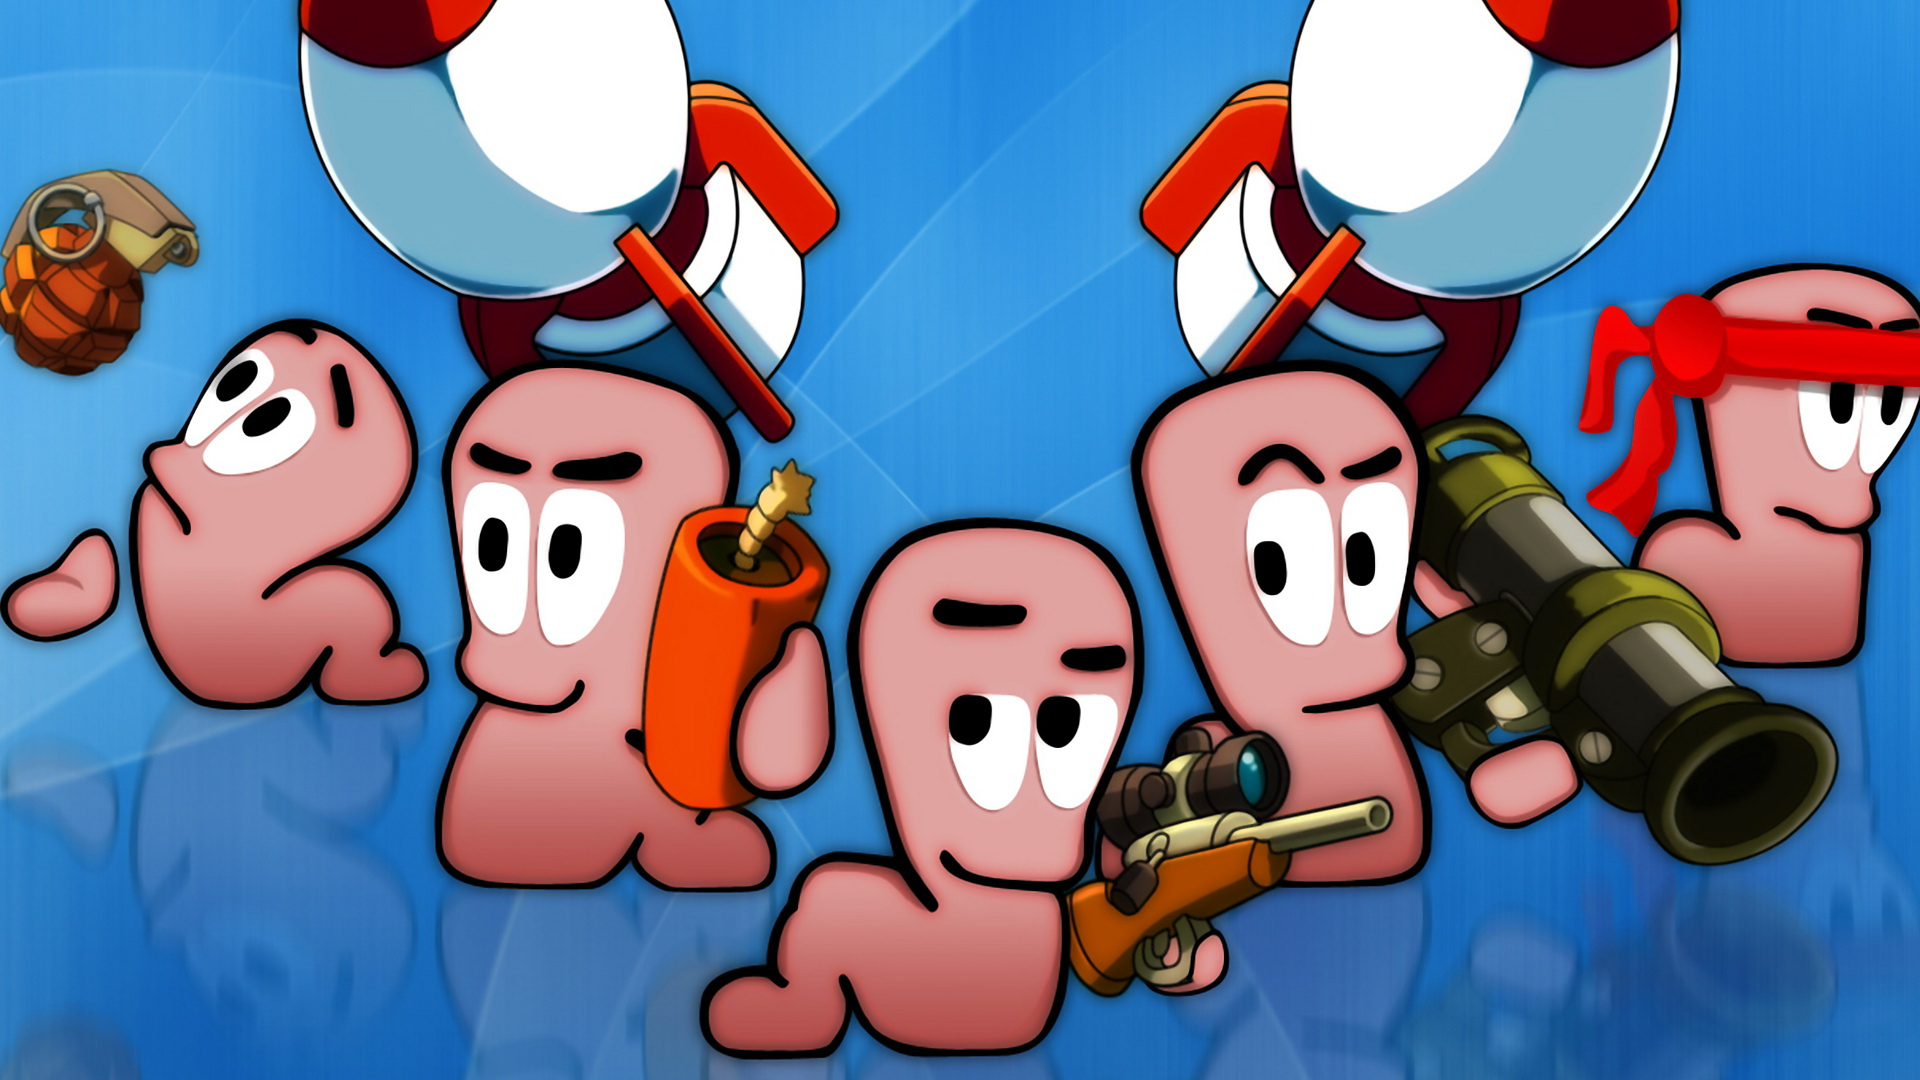 Worms HD Wallpaper Background Image 1920x1080 ID668152 1920x1080